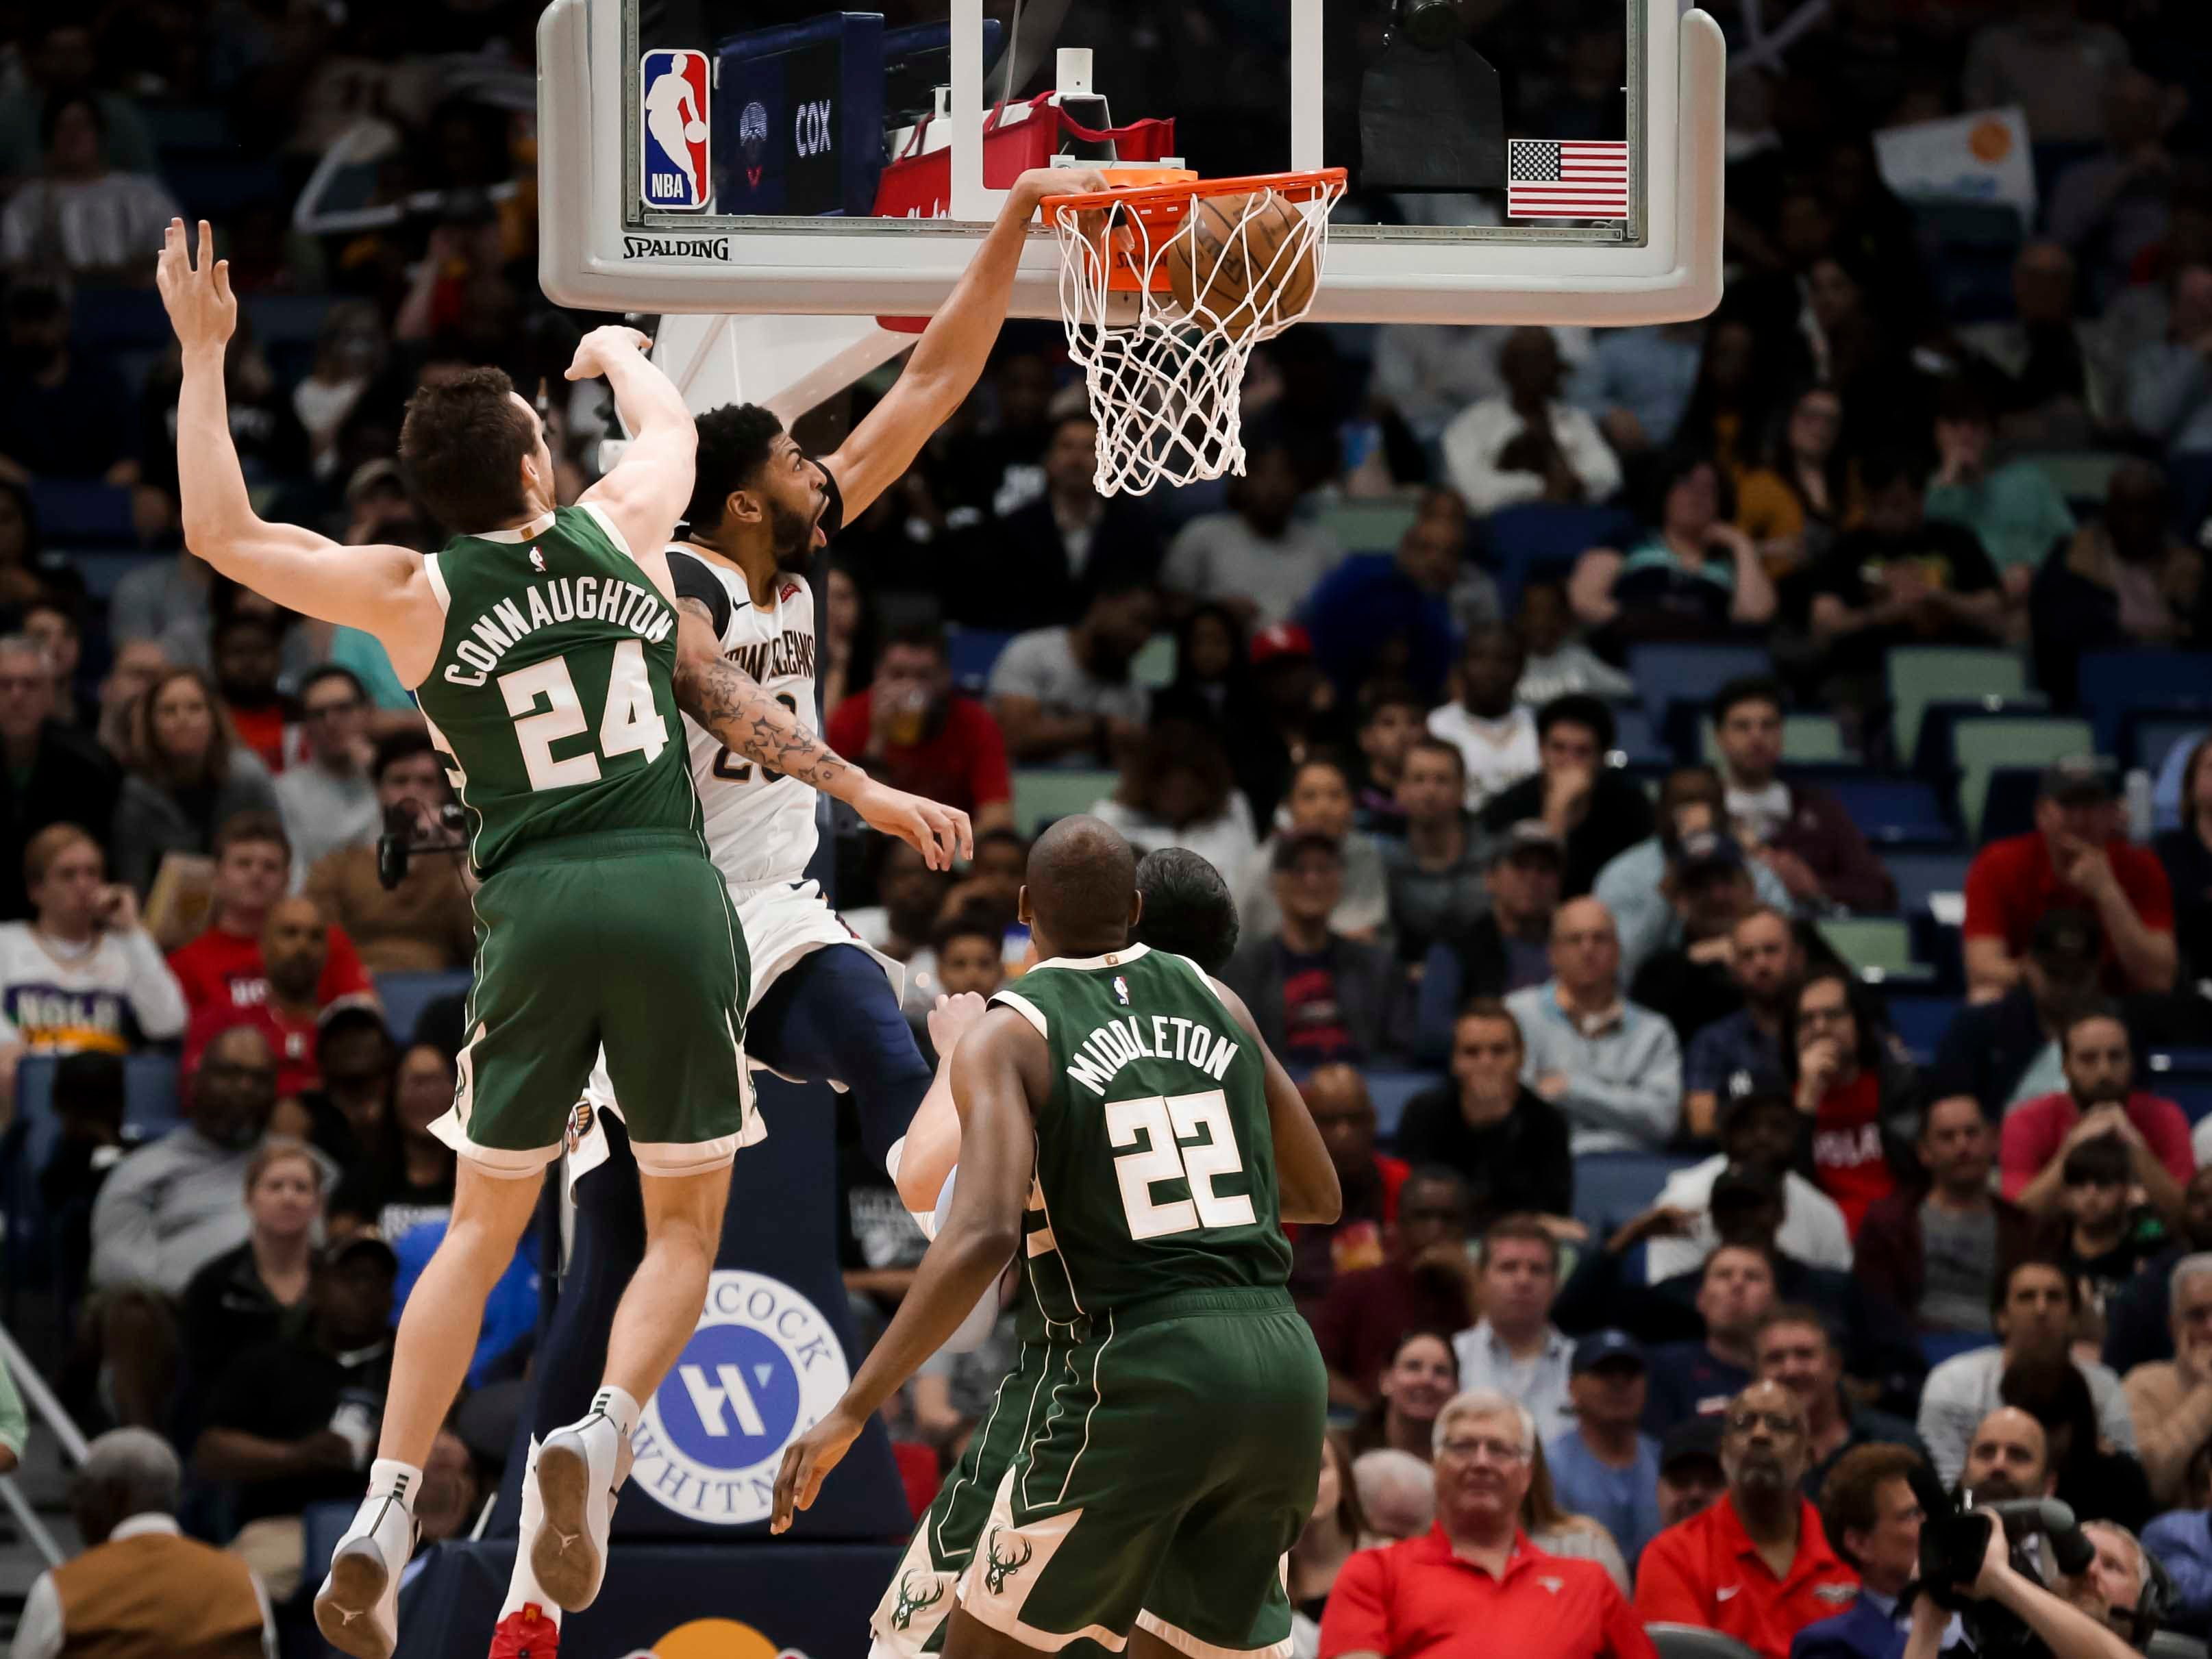 Pelicans forward Anthony Davis powers home a dunk against Bucks guard Pat Connaughton off an alley-oop pass during the second half.